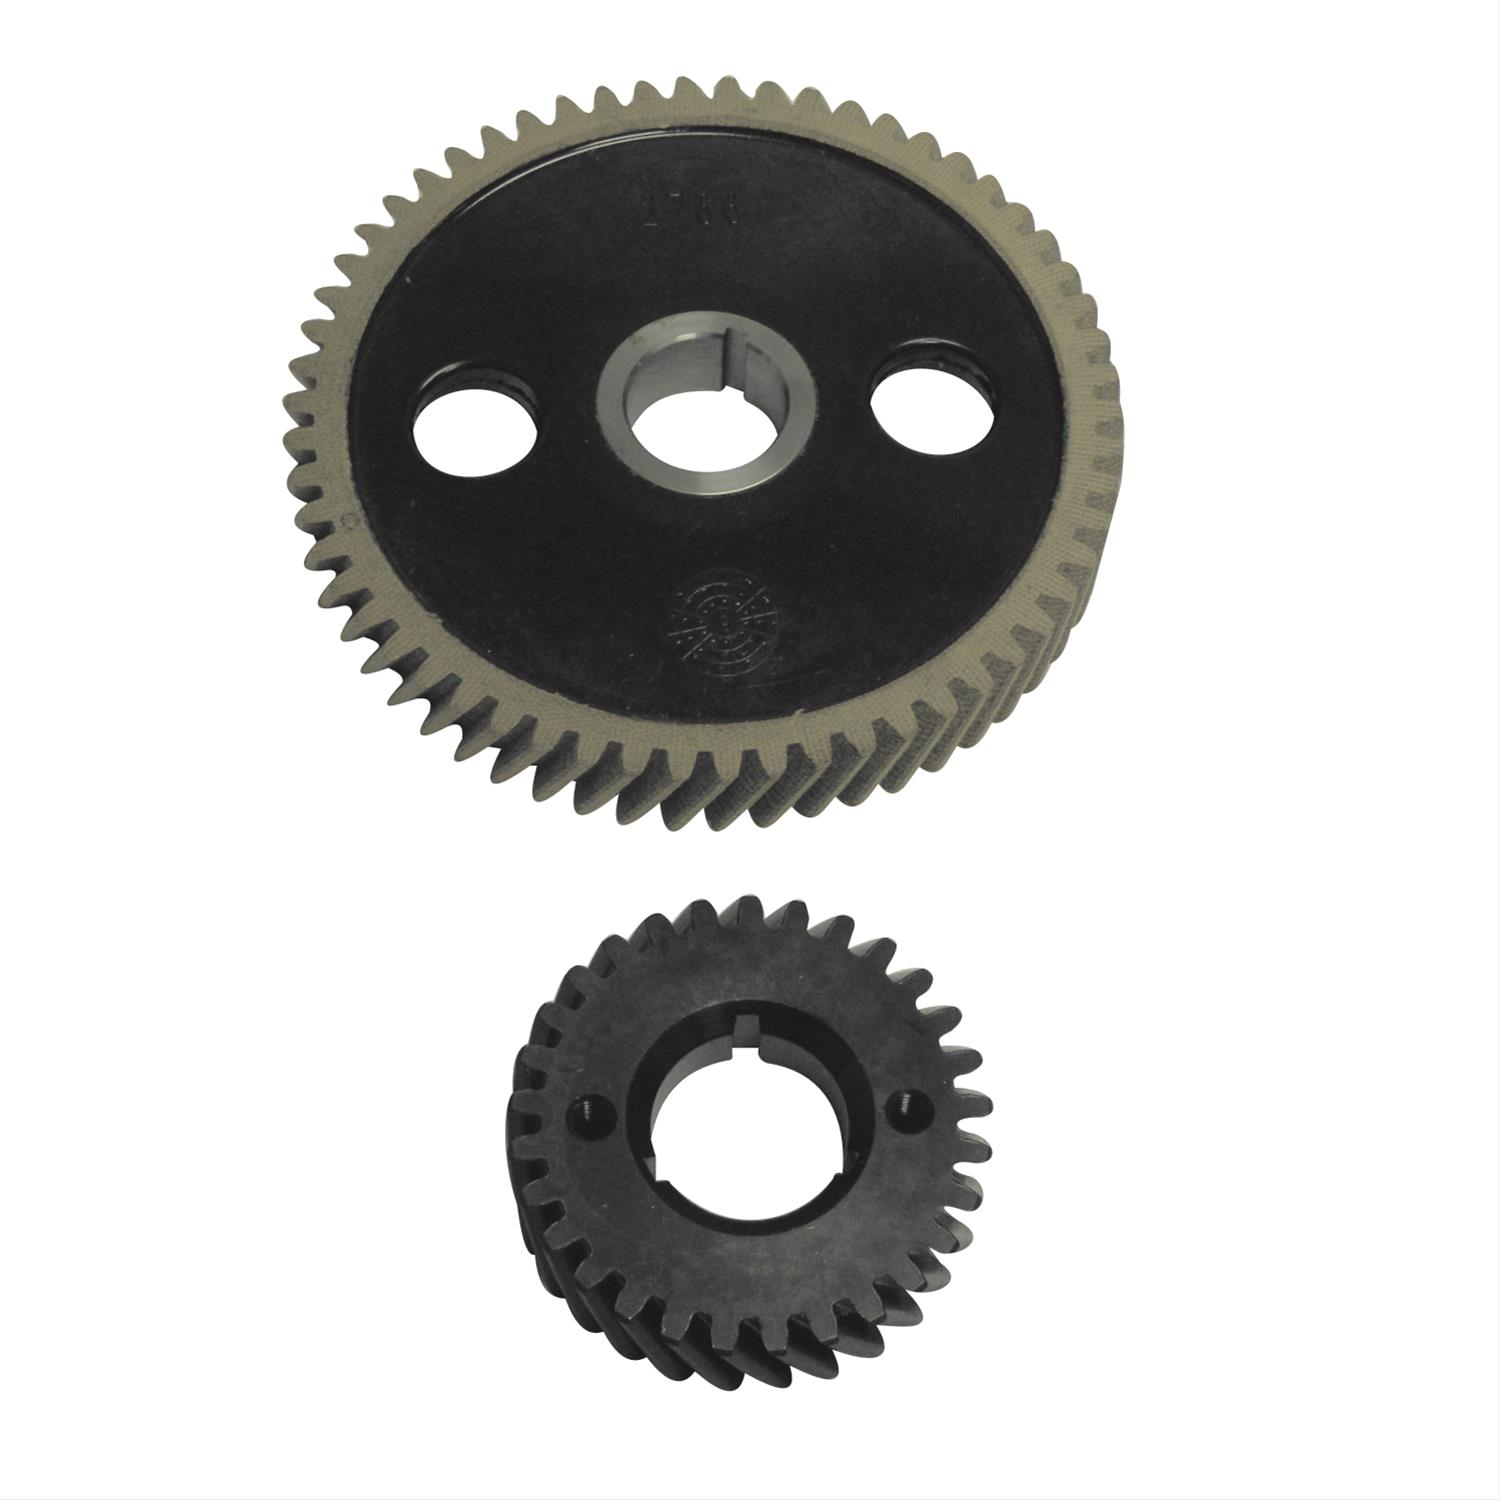 Melling Timing Gear Sets 2766s Free Shipping On Orders Over 99 At 1987 Nissan Pathfinder Wiring Diagrams Summit Racing